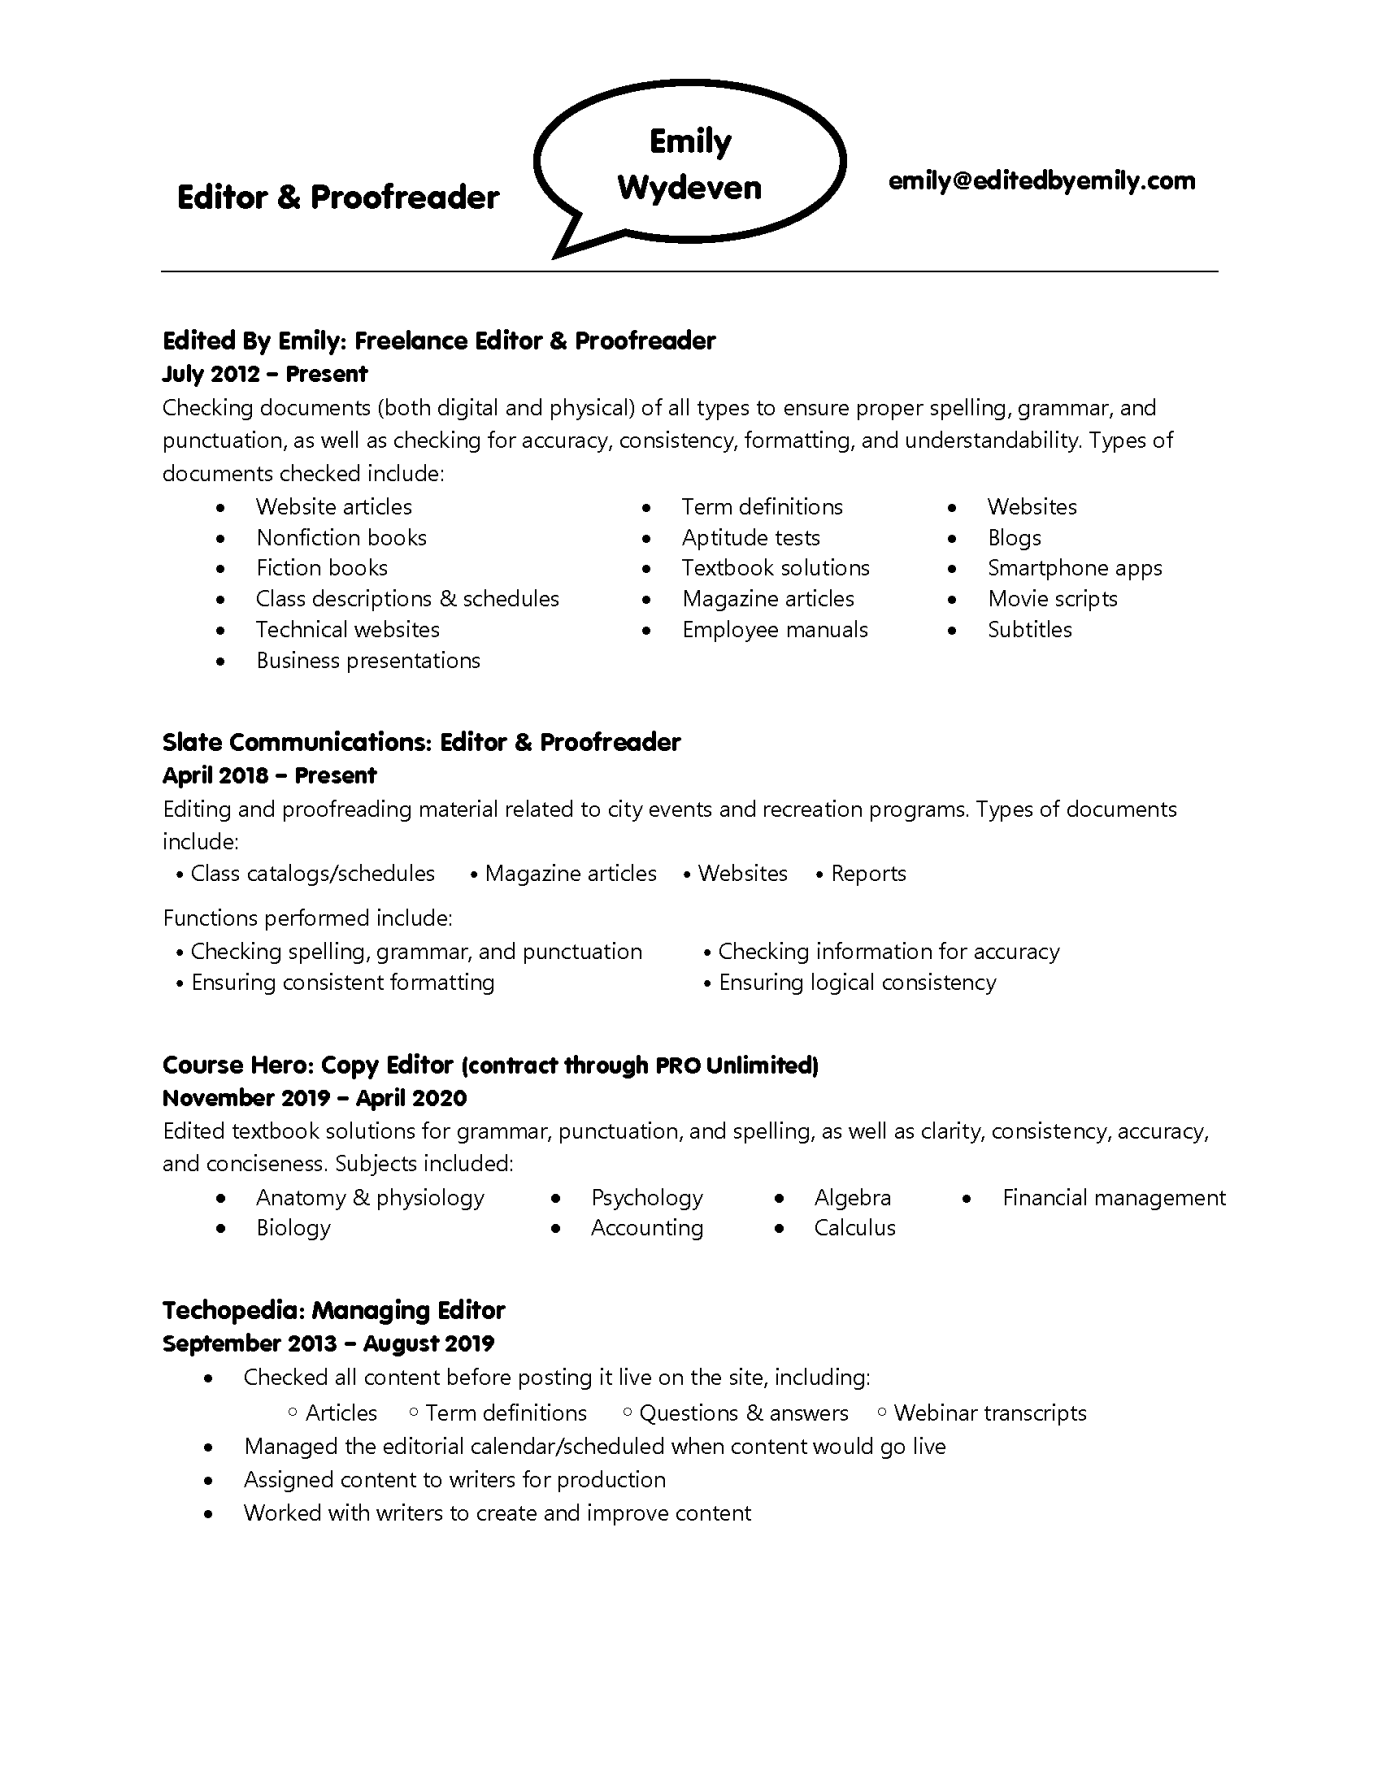 Emily Wydeven resume